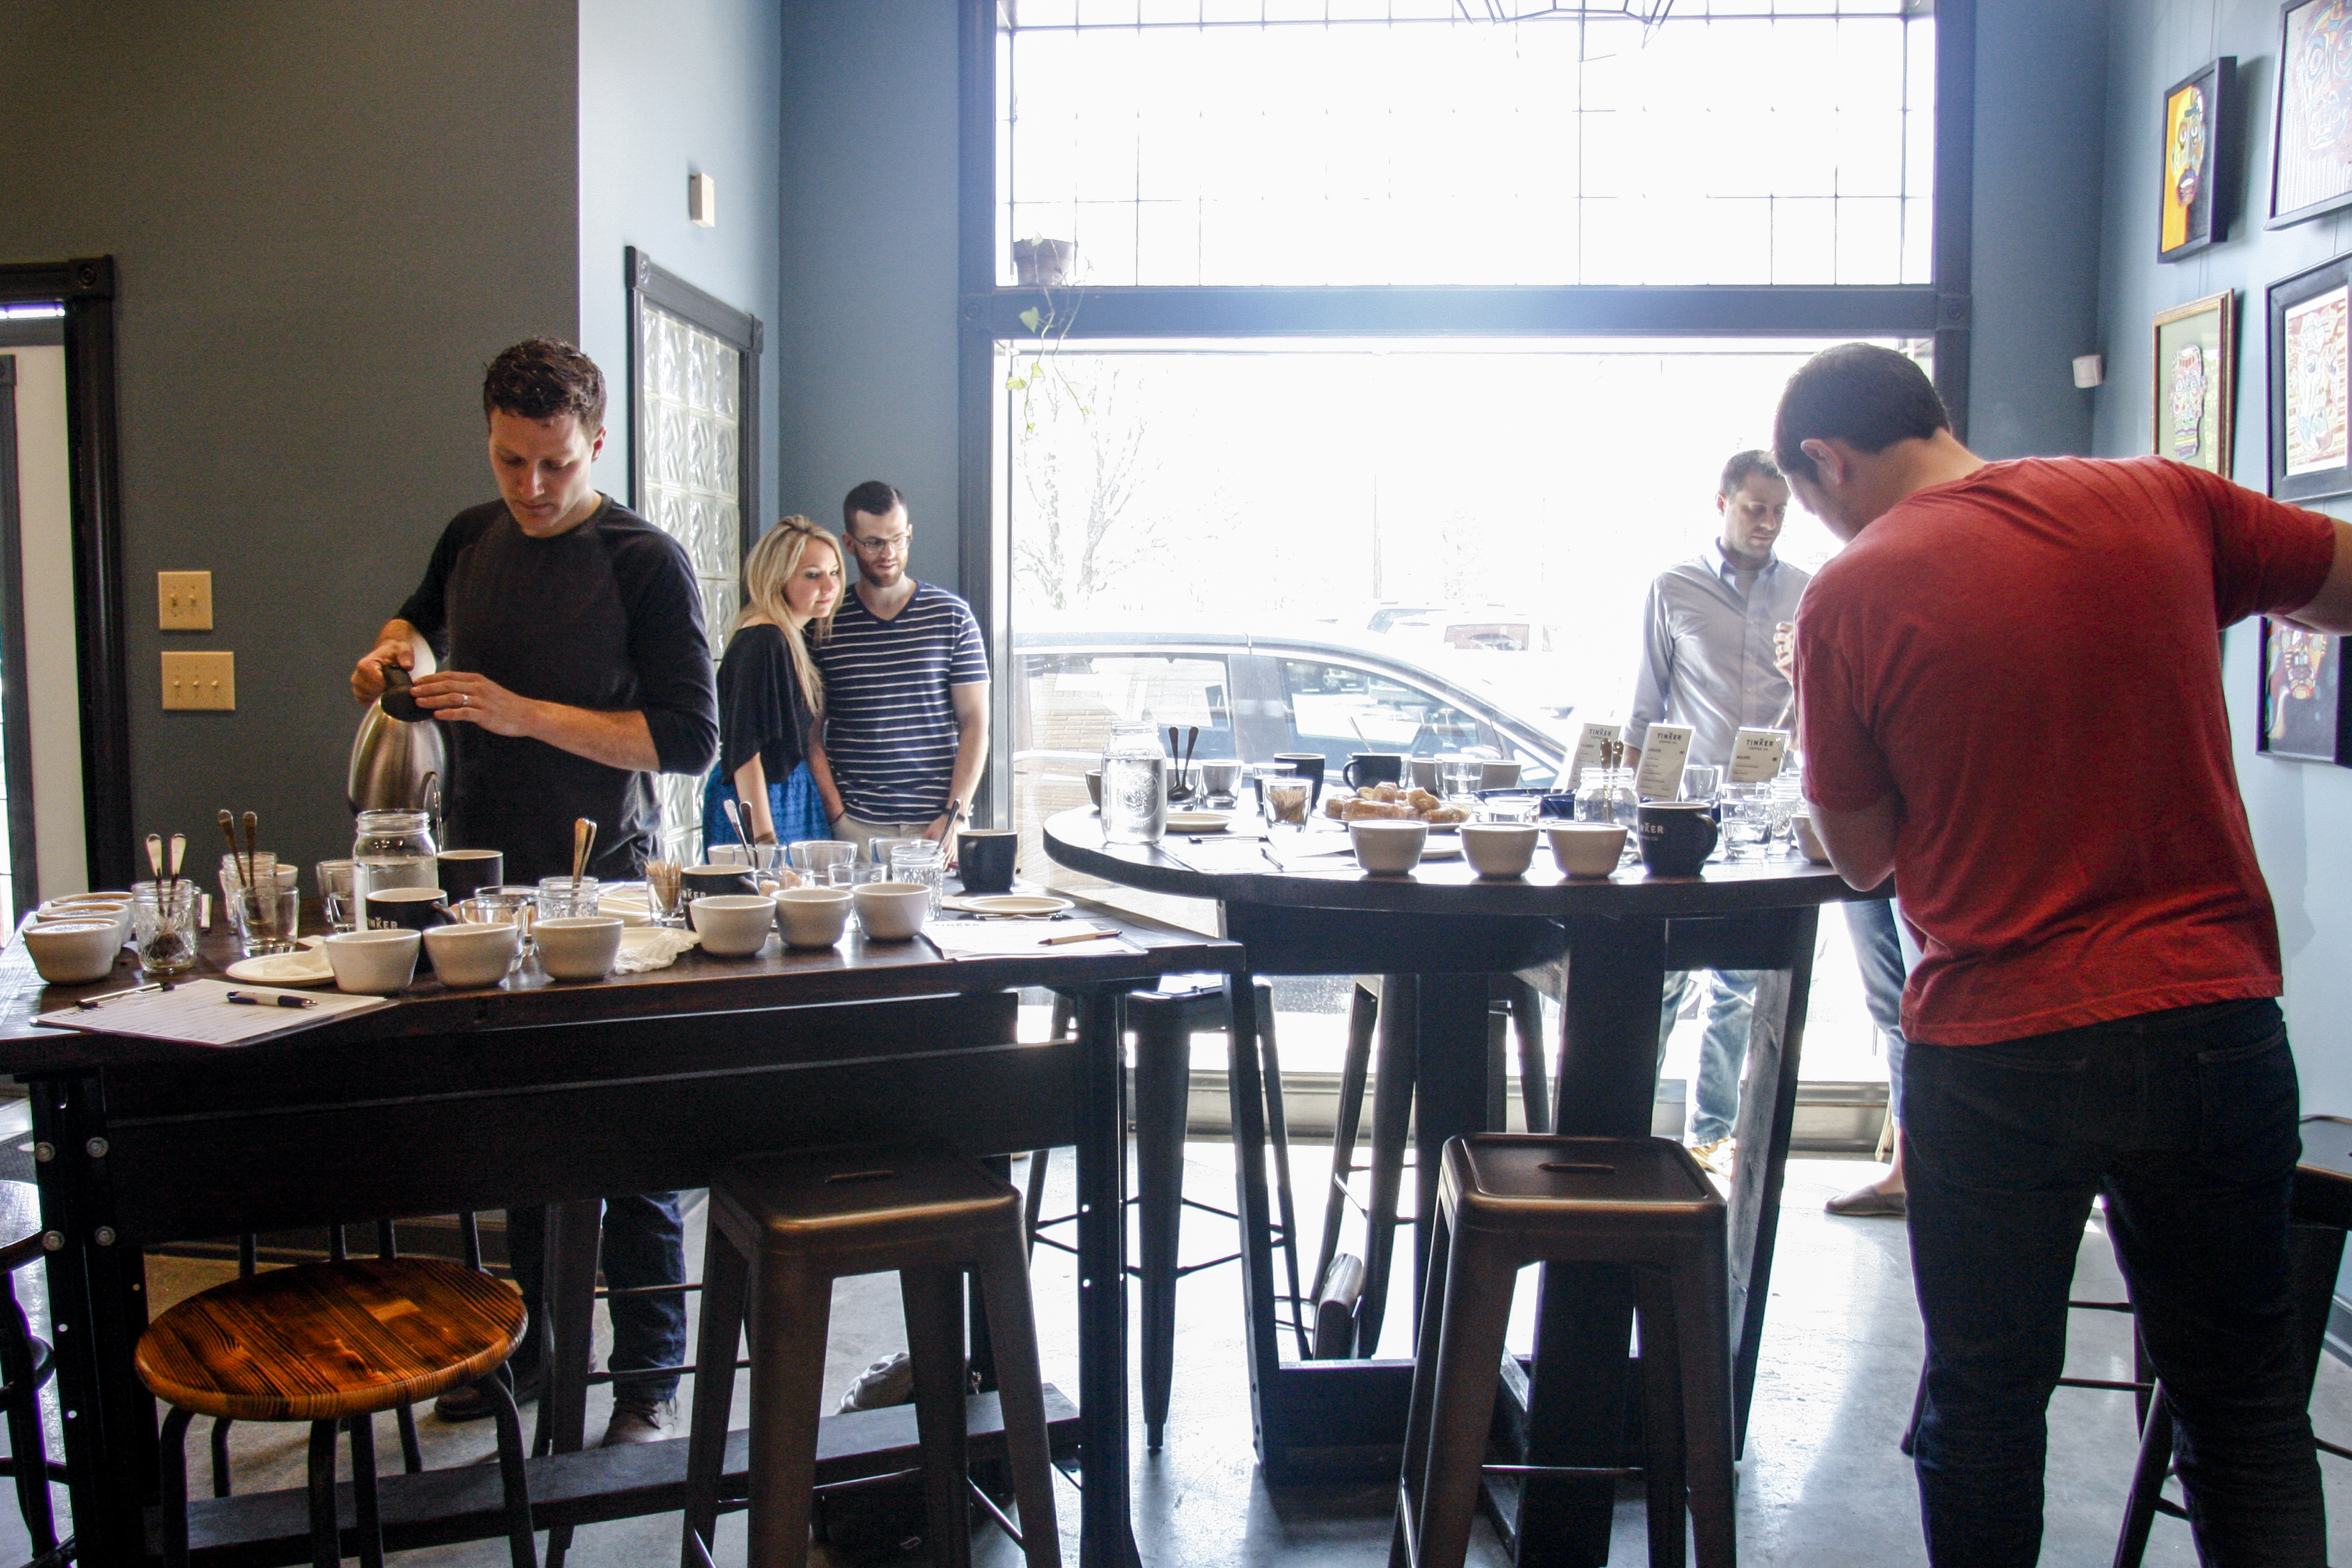 Attendees at a cupping class held at Tinker Coffee. (Annie Wu/Epoch Times)